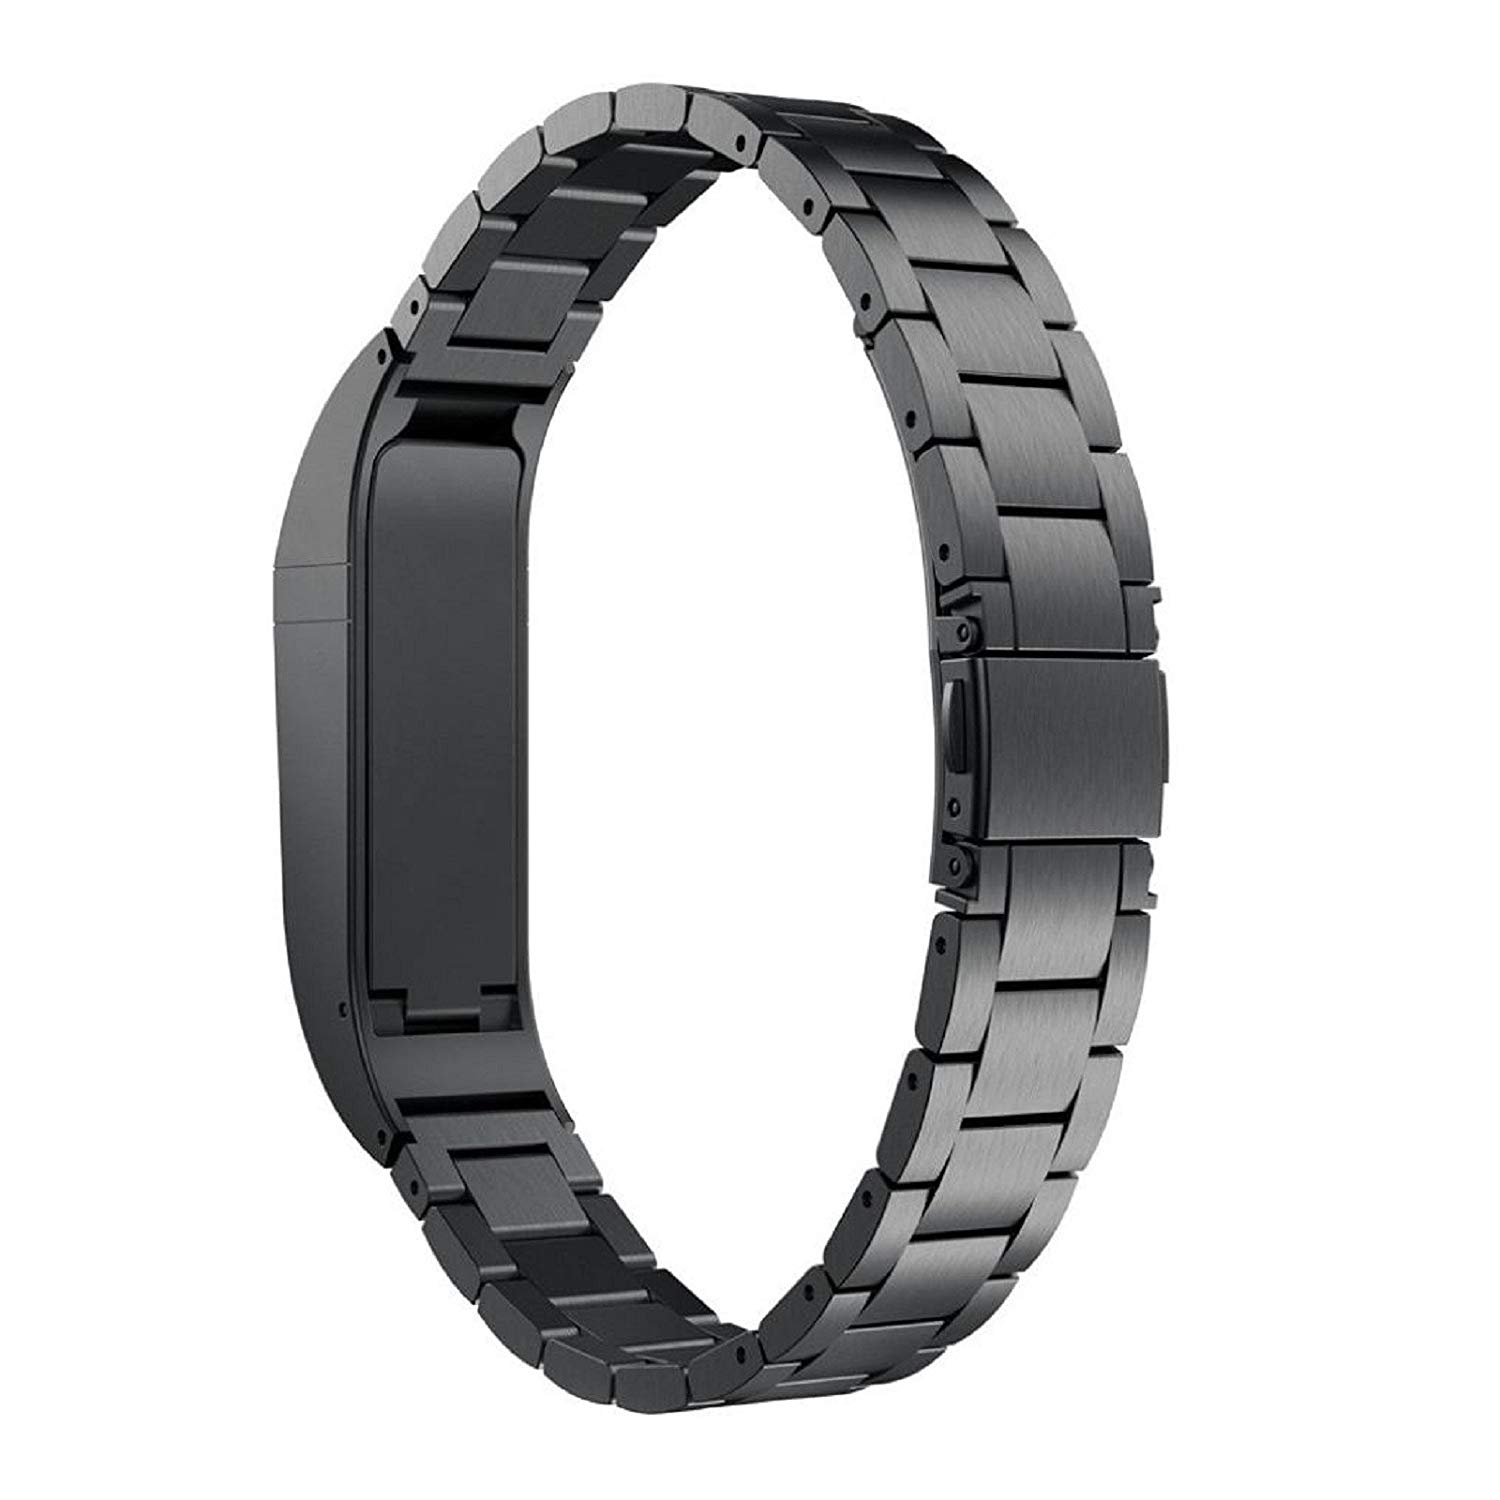 Owill Durable Stainless Steel Strap Wrist Band Replacement Bracelet For Fitbit Flex, Length:235MM (Black)